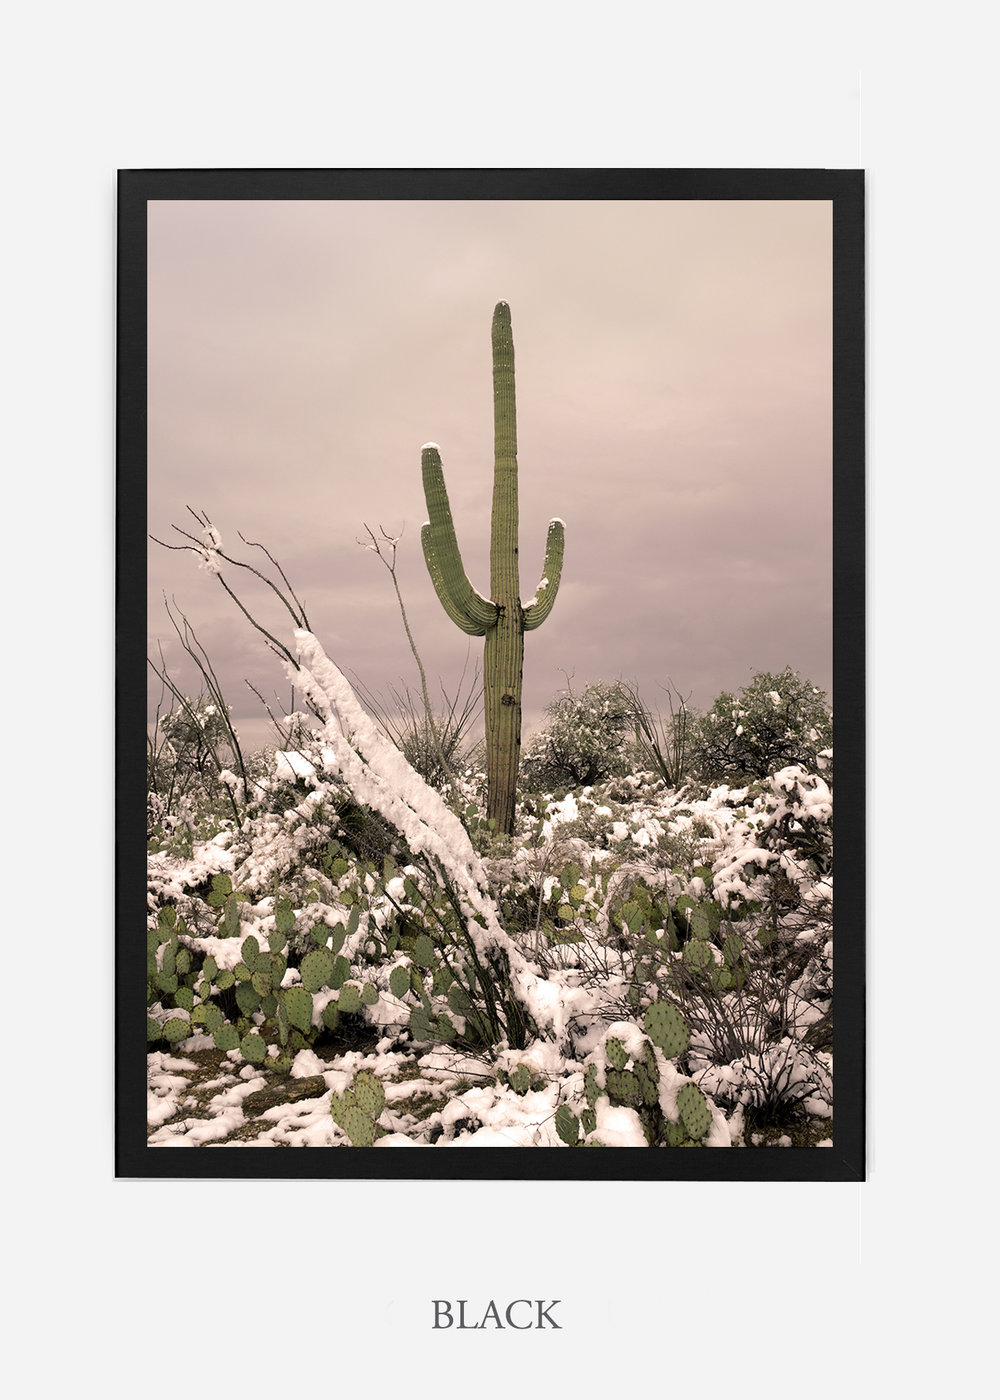 nomat-blackframe-saguaroNo.4-wildercalifornia-art-wallart-cactusprint-homedecor-prints-arizona-botanical-artwork-interiordesign.jpg